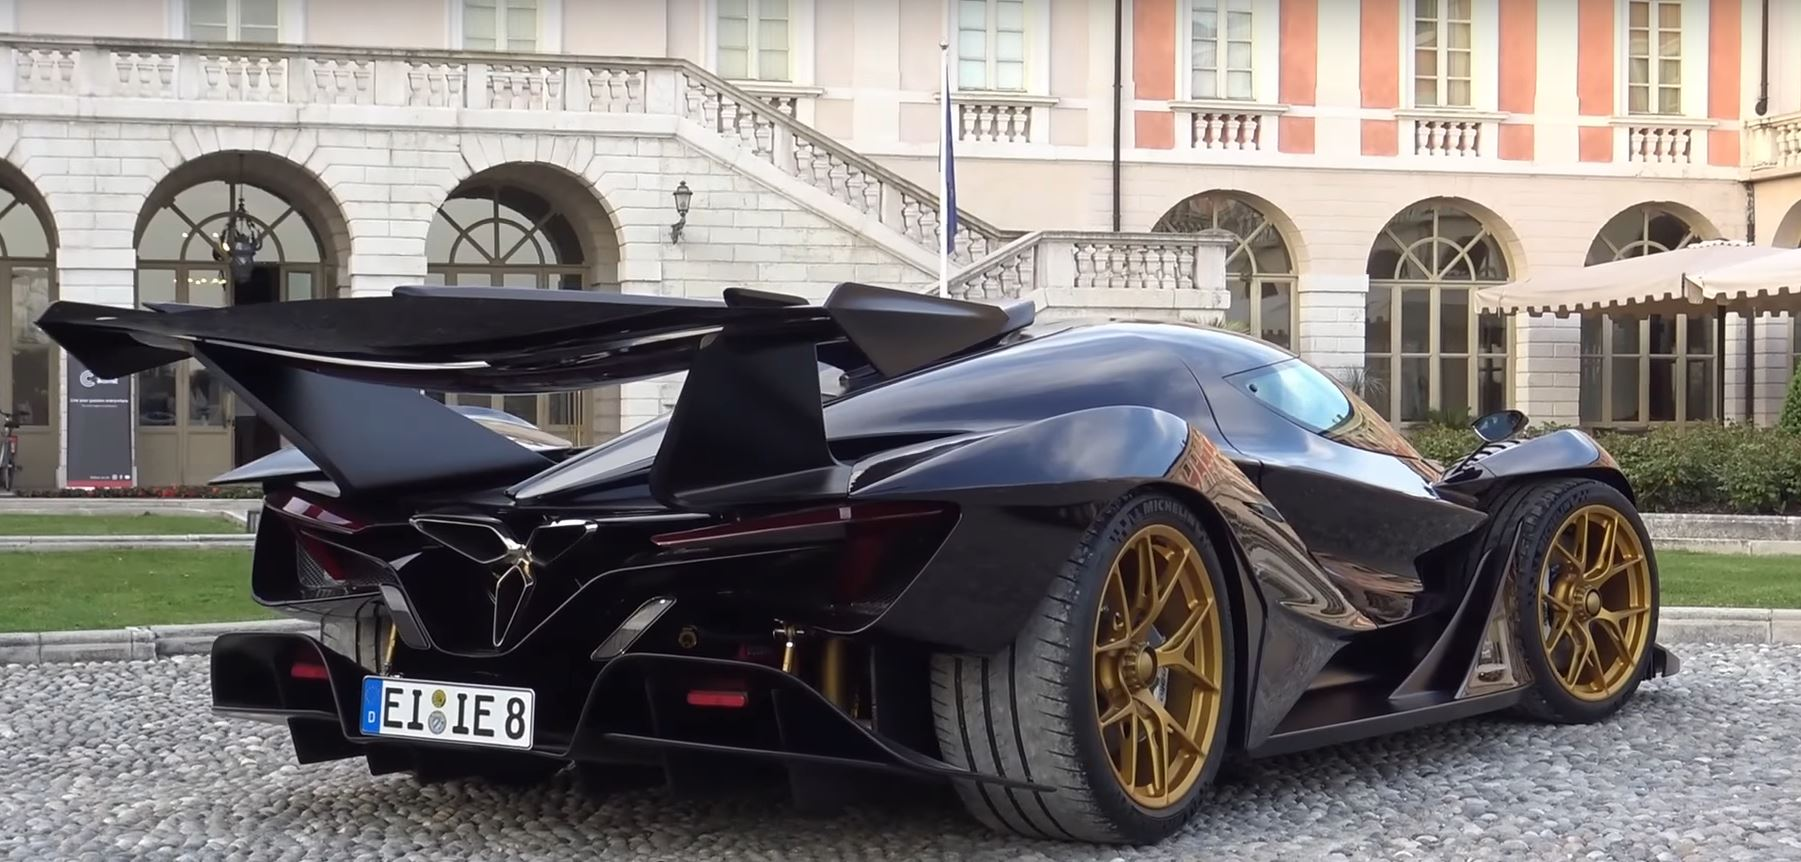 Apollo Ie Hypercar V12 Start Up Will Wake The Dead